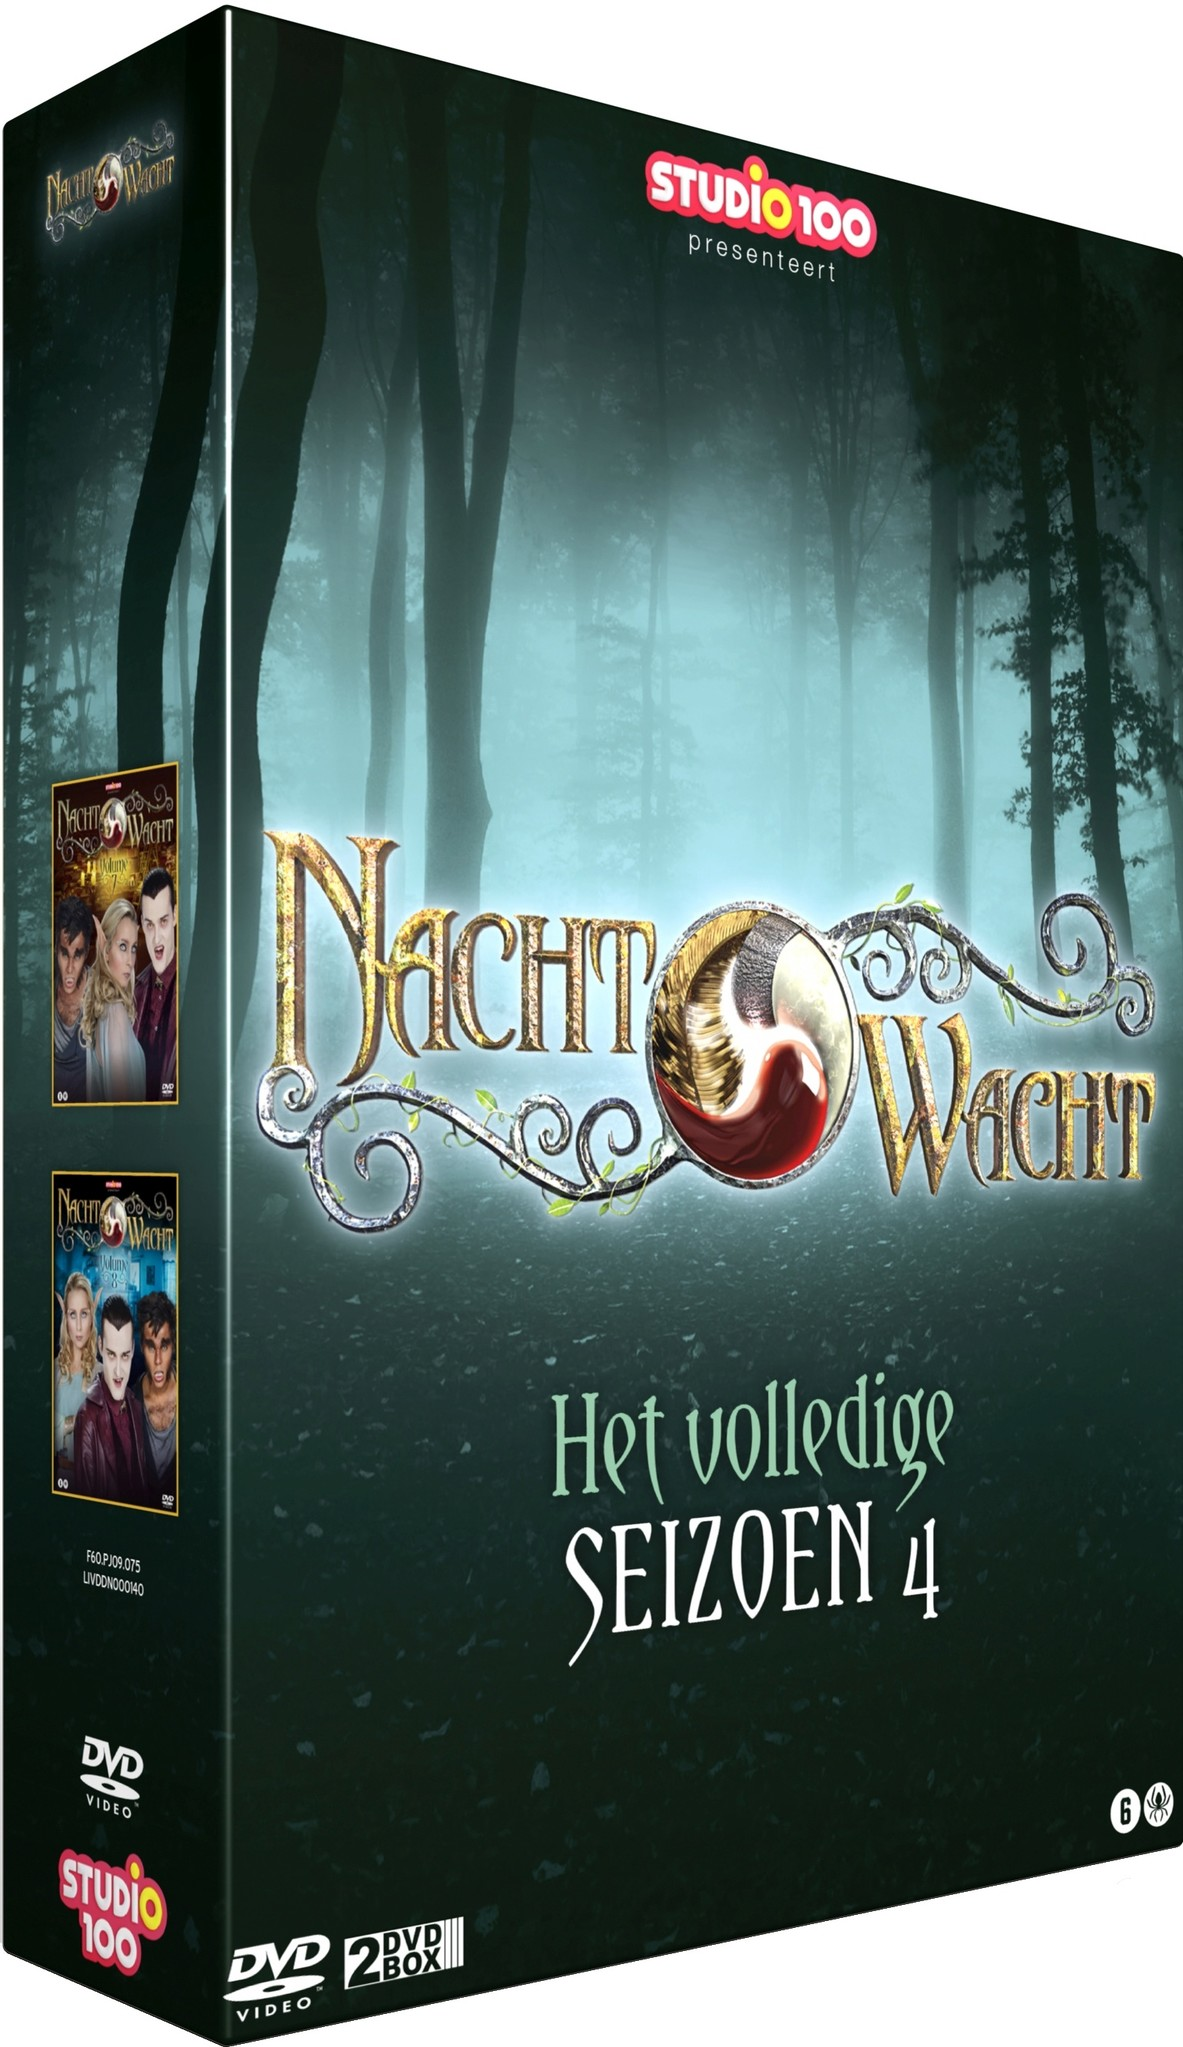 Nachtwacht DVD Box: season 4